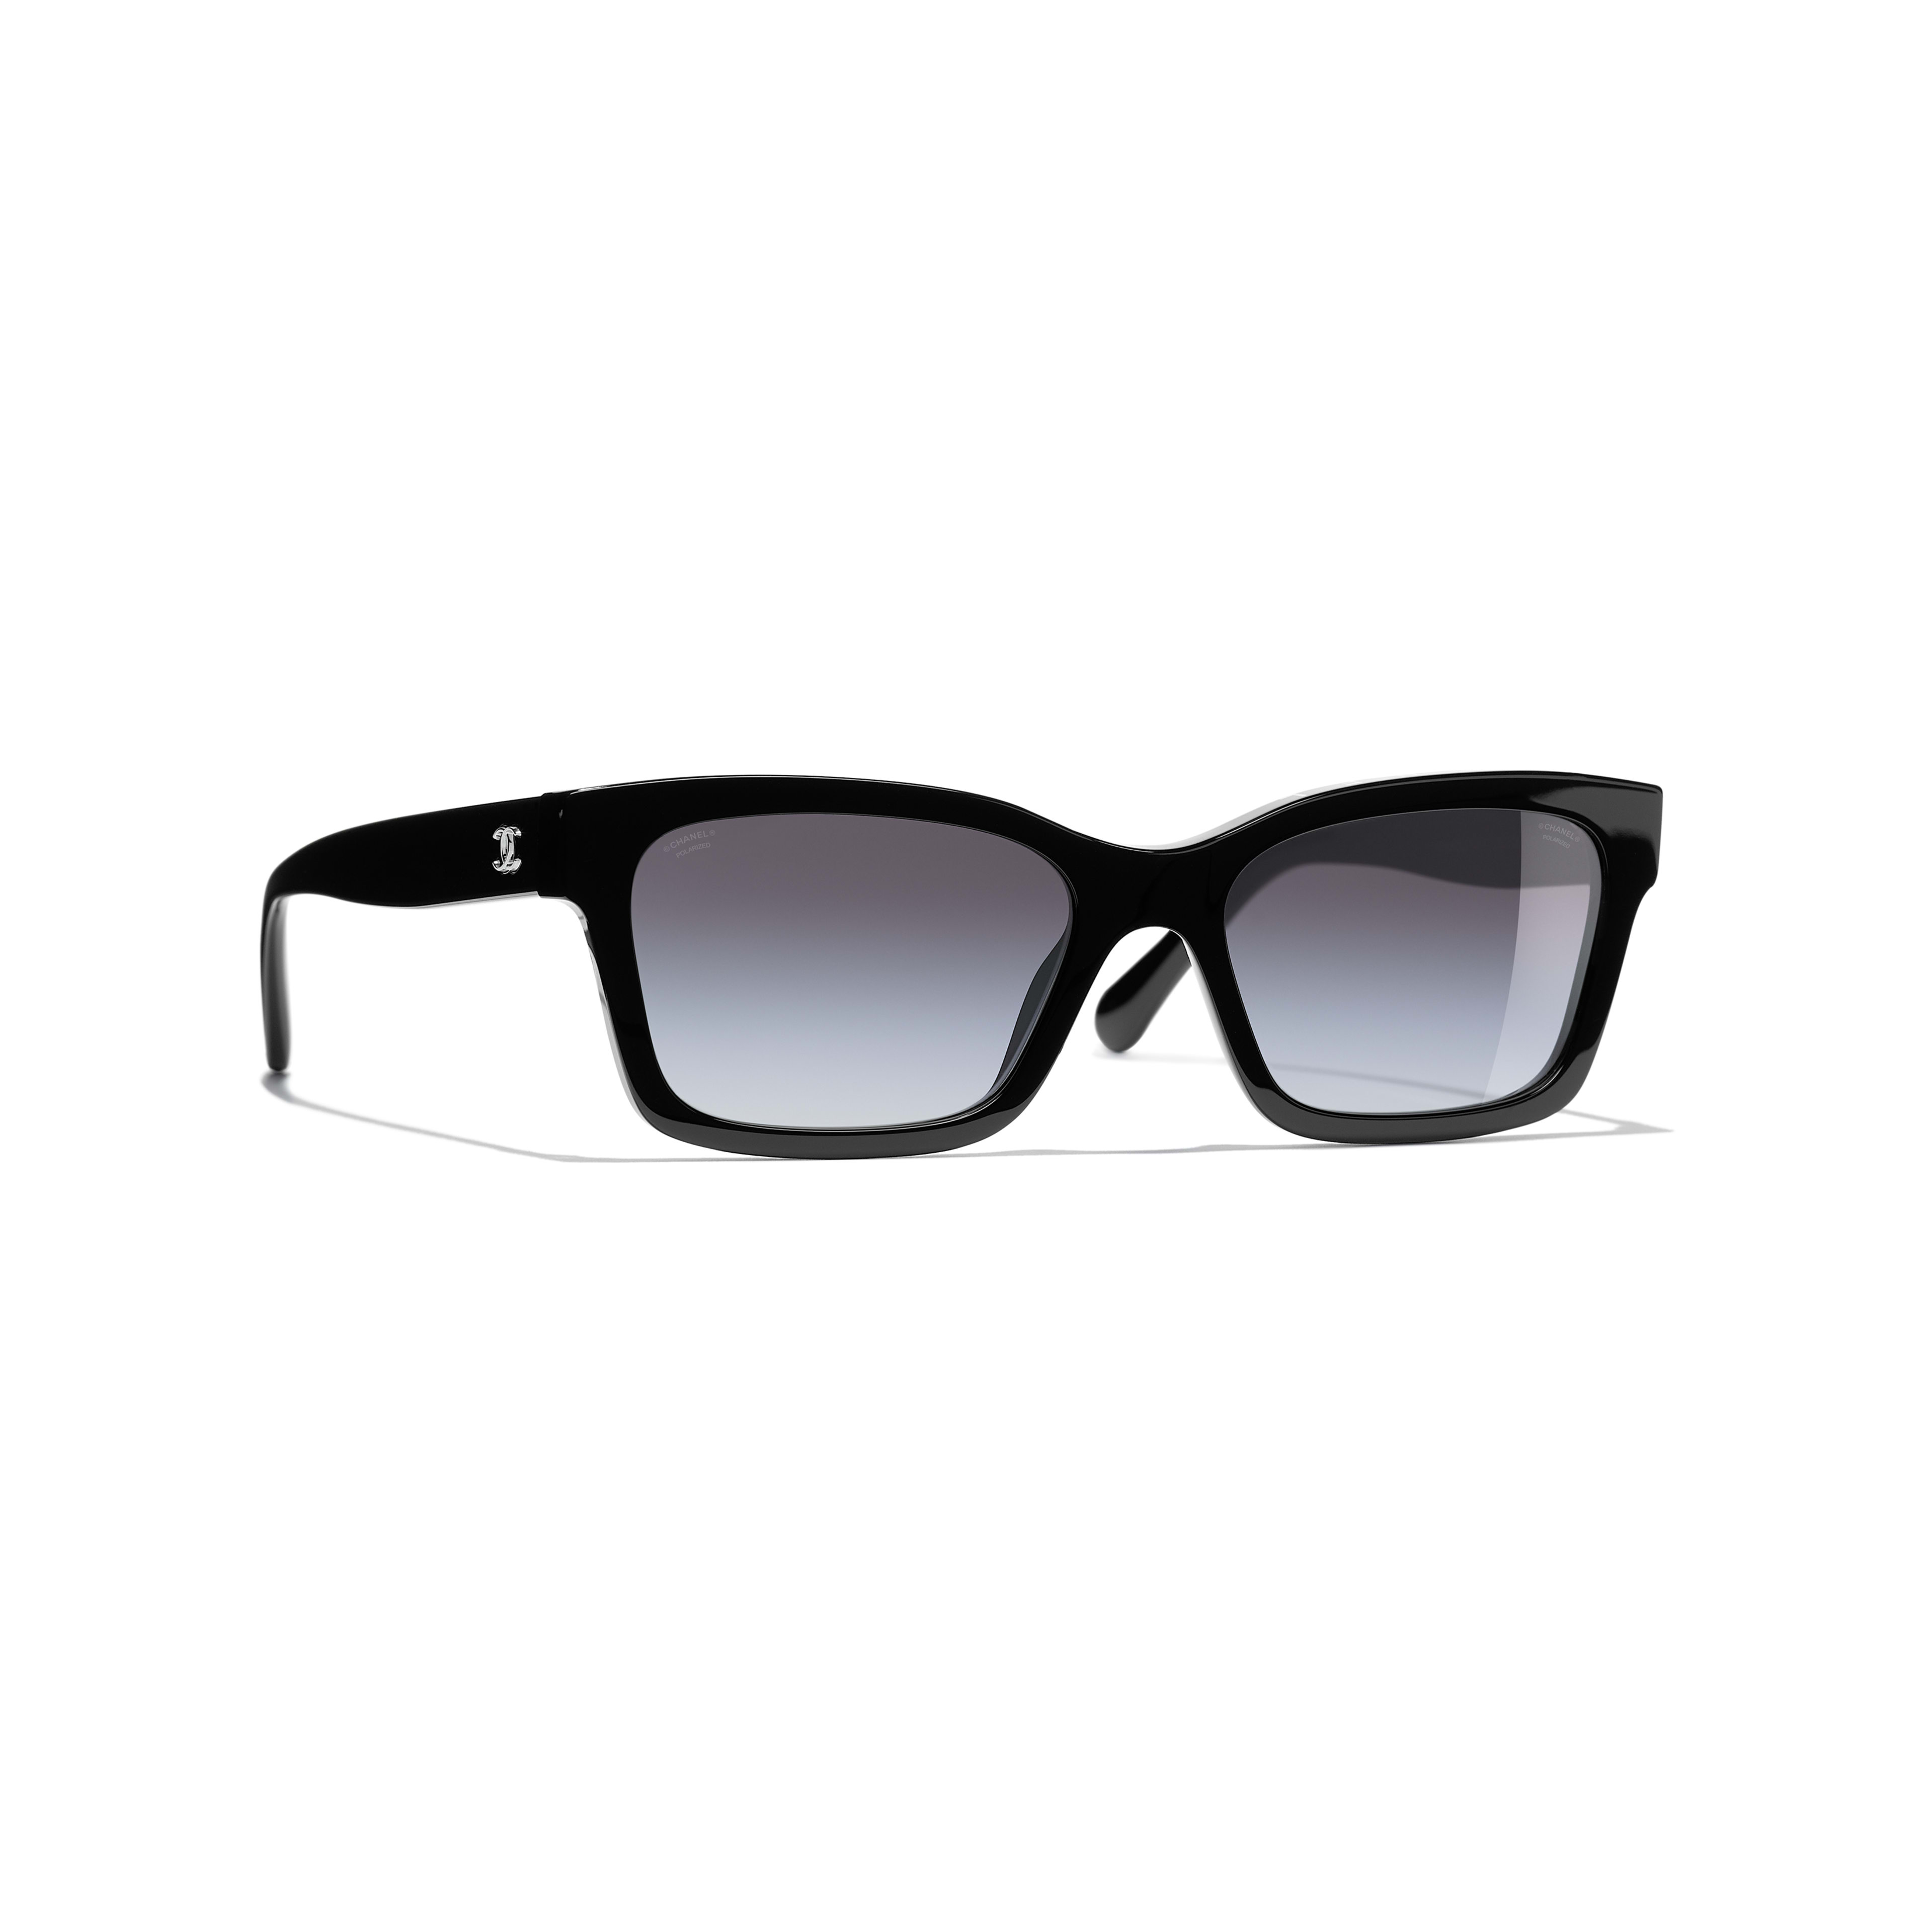 Square Sunglasses - Black - Acetate - CHANEL - Default view - see standard sized version